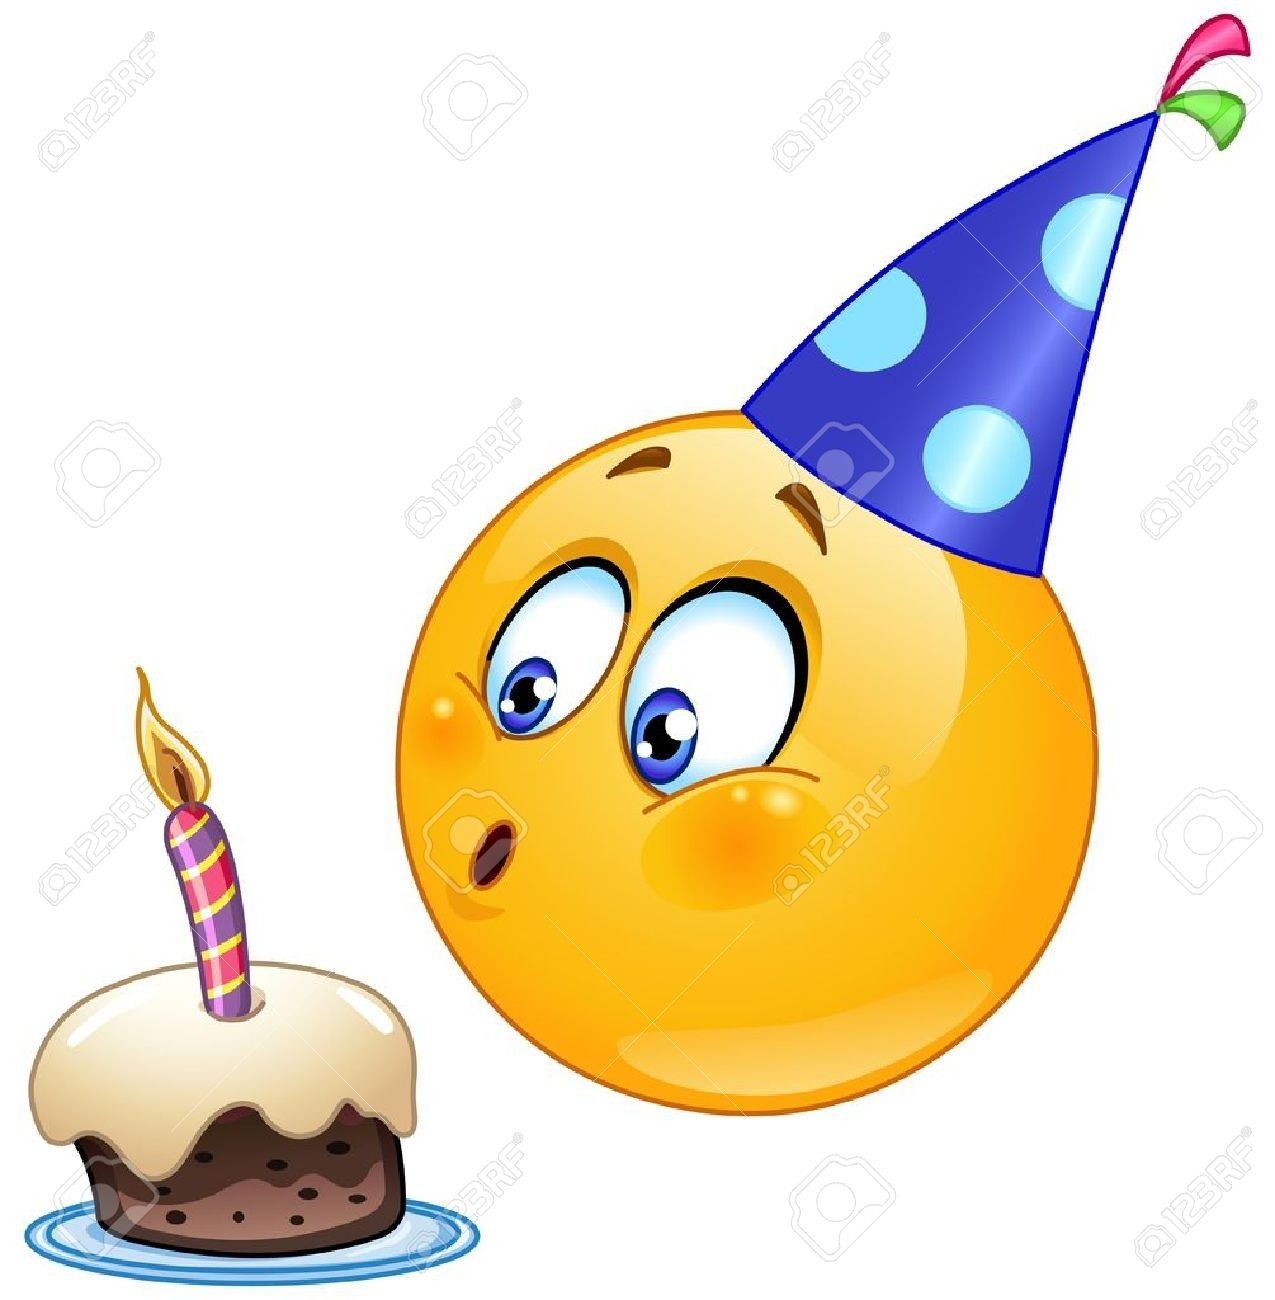 Birthday Emoticon Blowing Cake Candle Royalty Free Cliparts for Birthday Smiley Faces Clip Art 28375